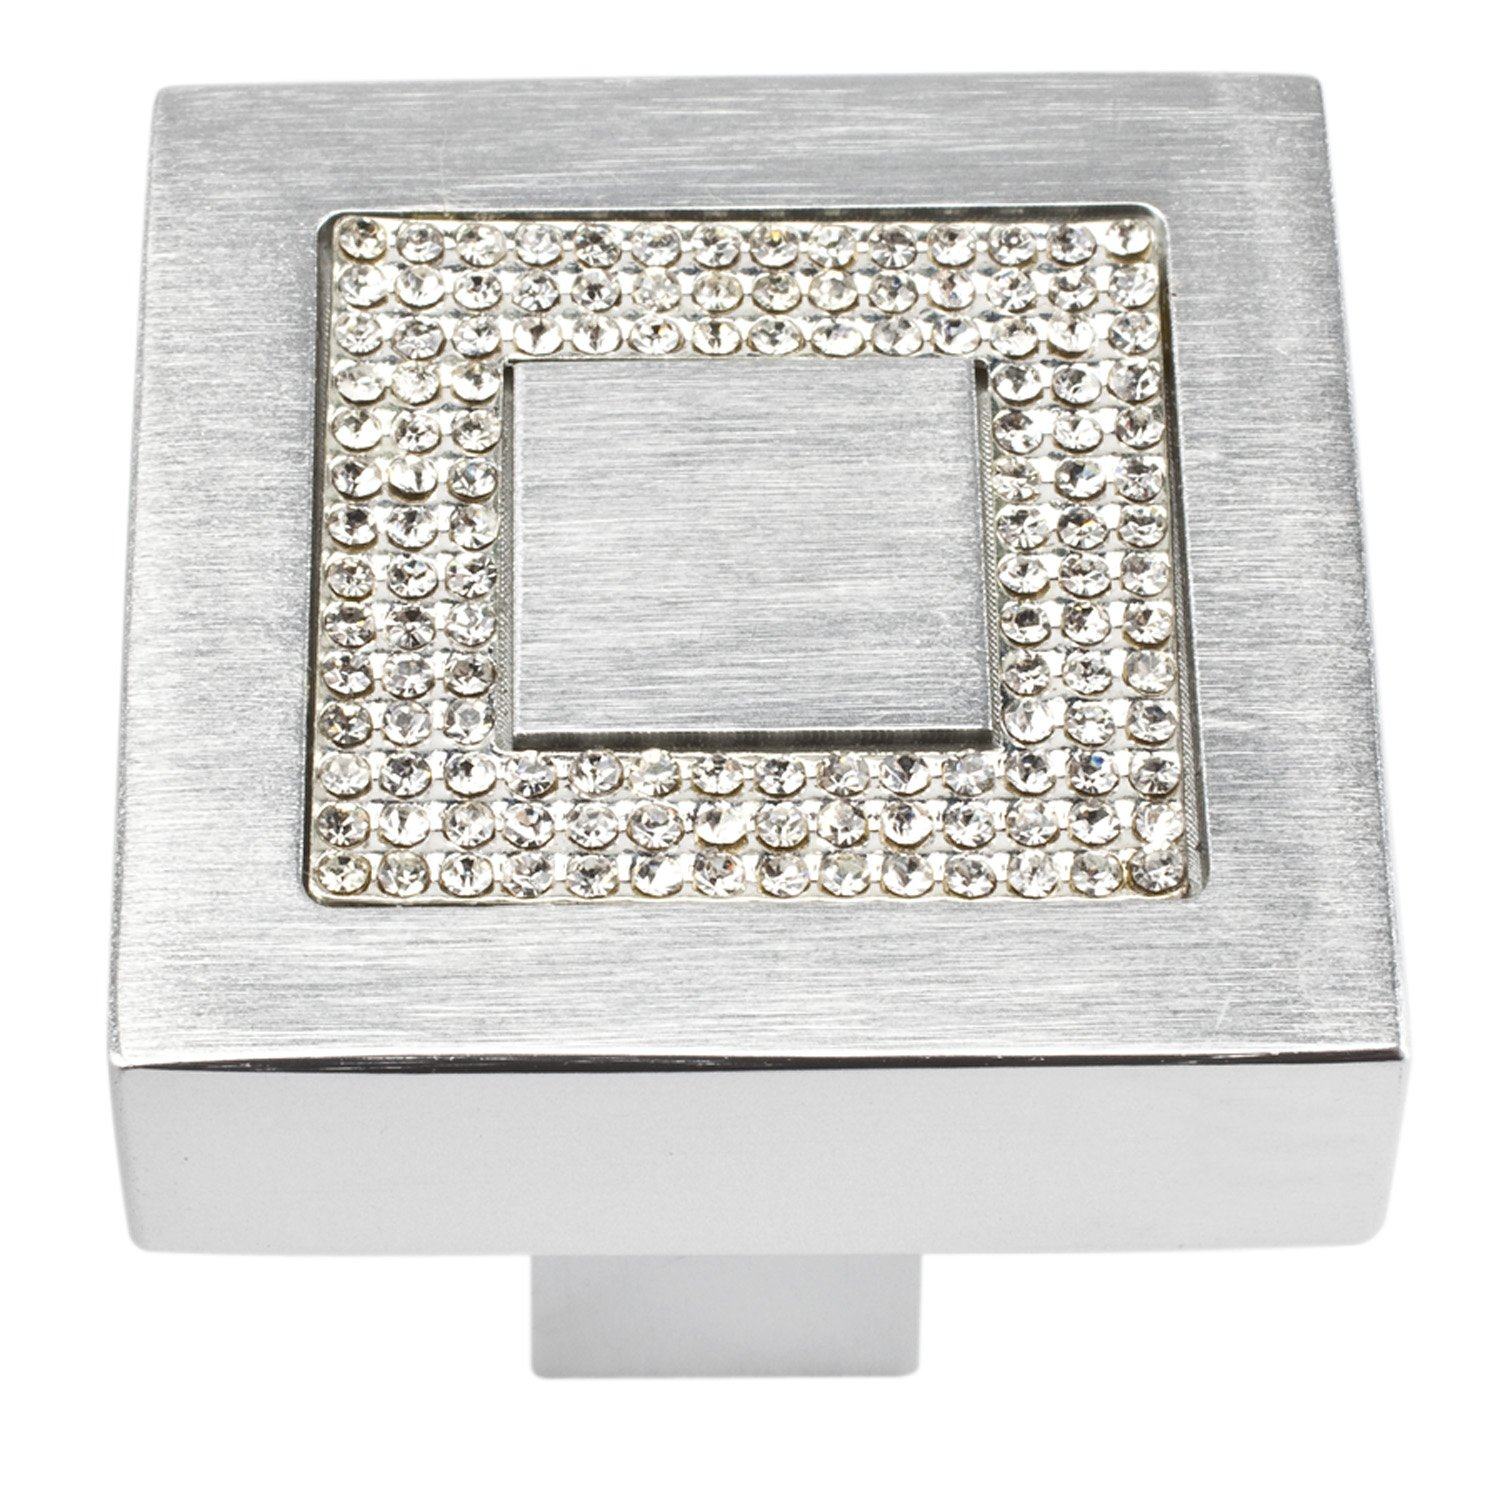 Atlas Homewares 3192 Crystal Collection 1.4-Inch Square Inset Crystal Knob, Matte Chrome